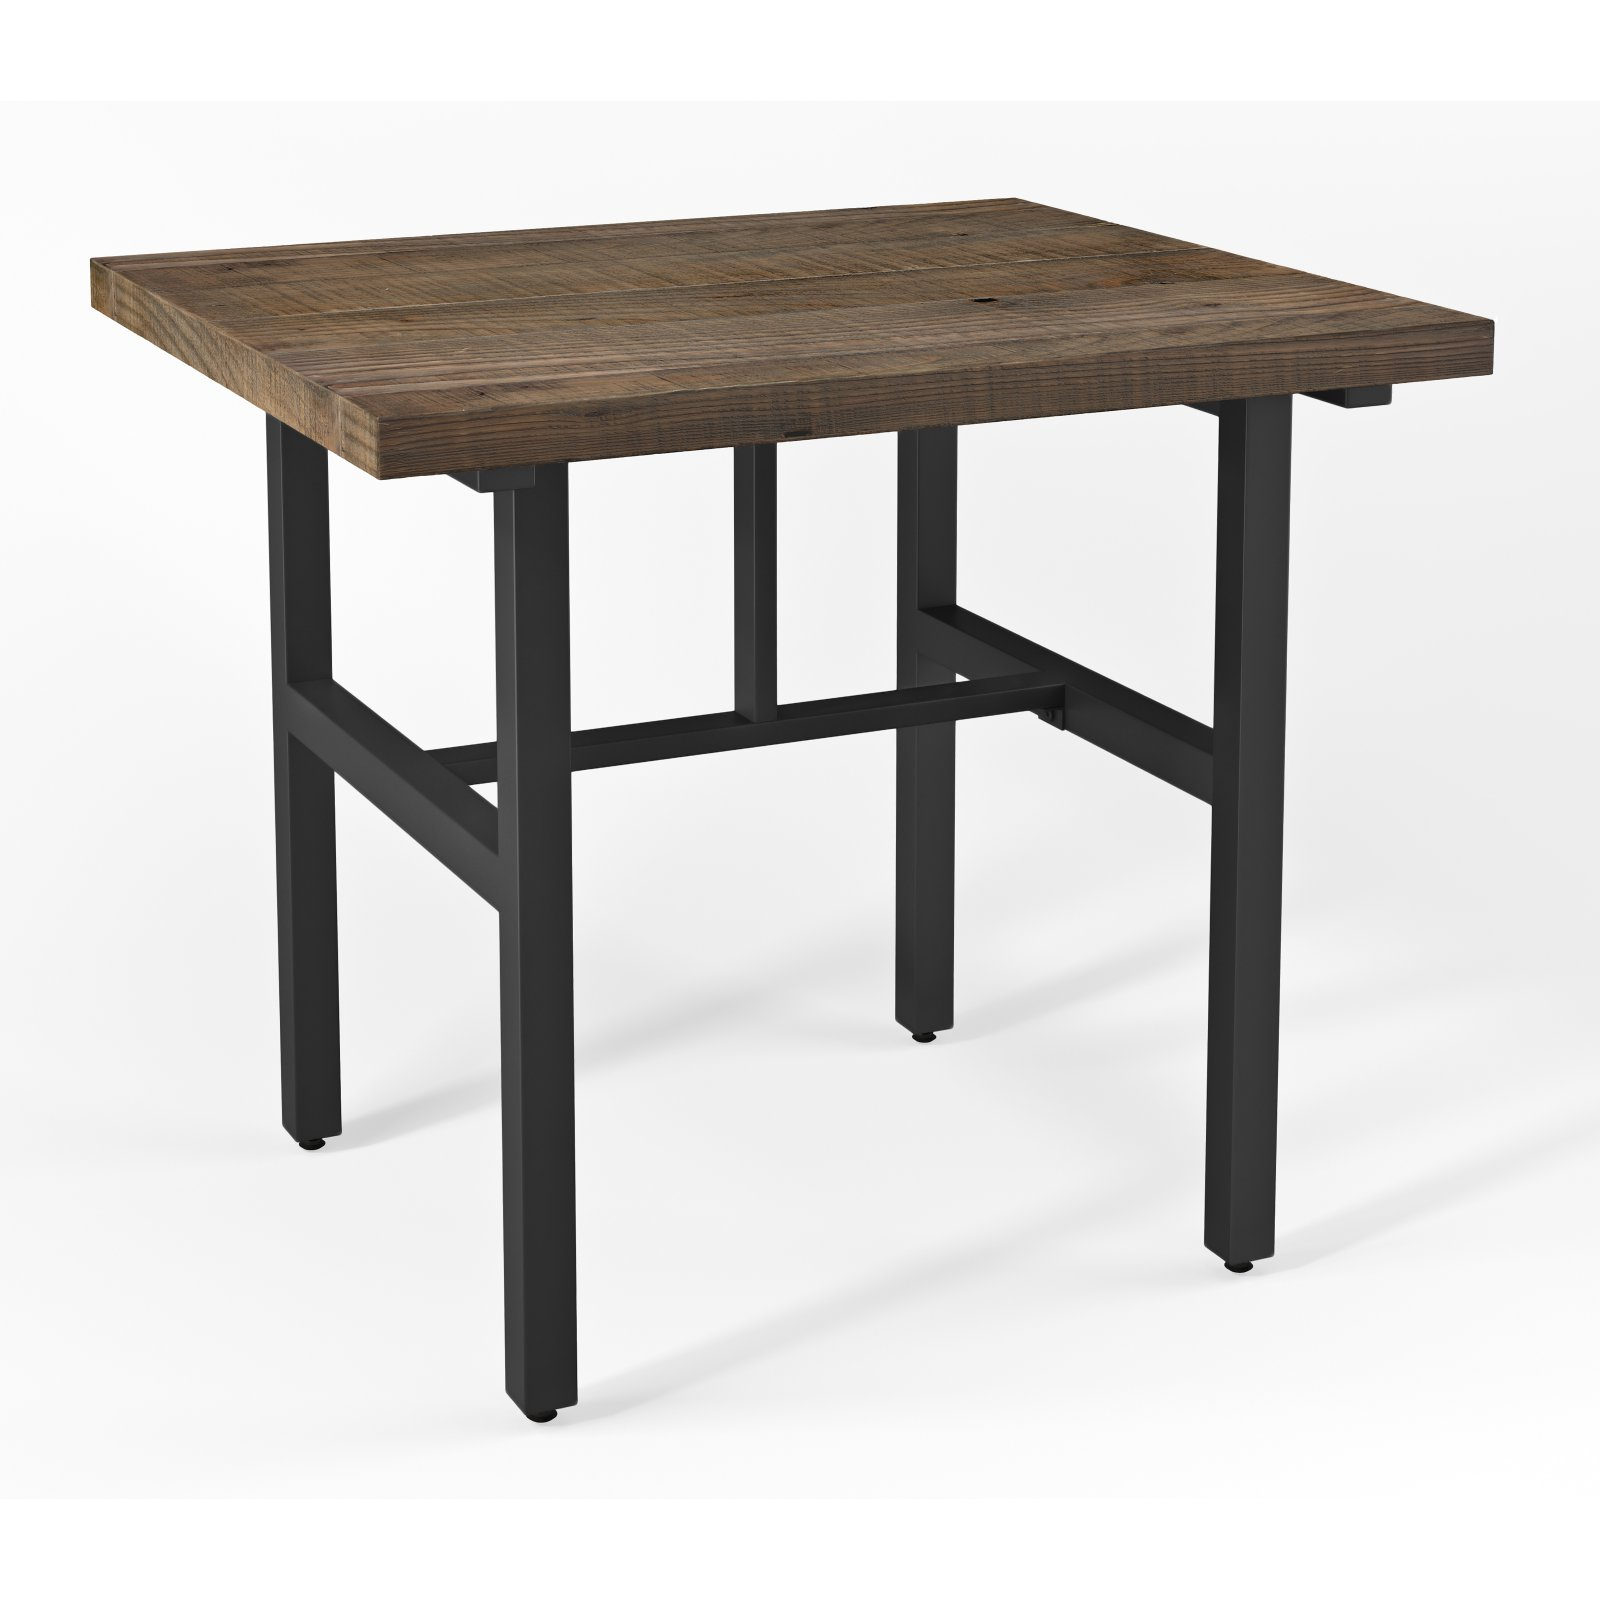 """Alaterre Pomona 36""""H Reclaimed Wood Counter Height Dining Table"""